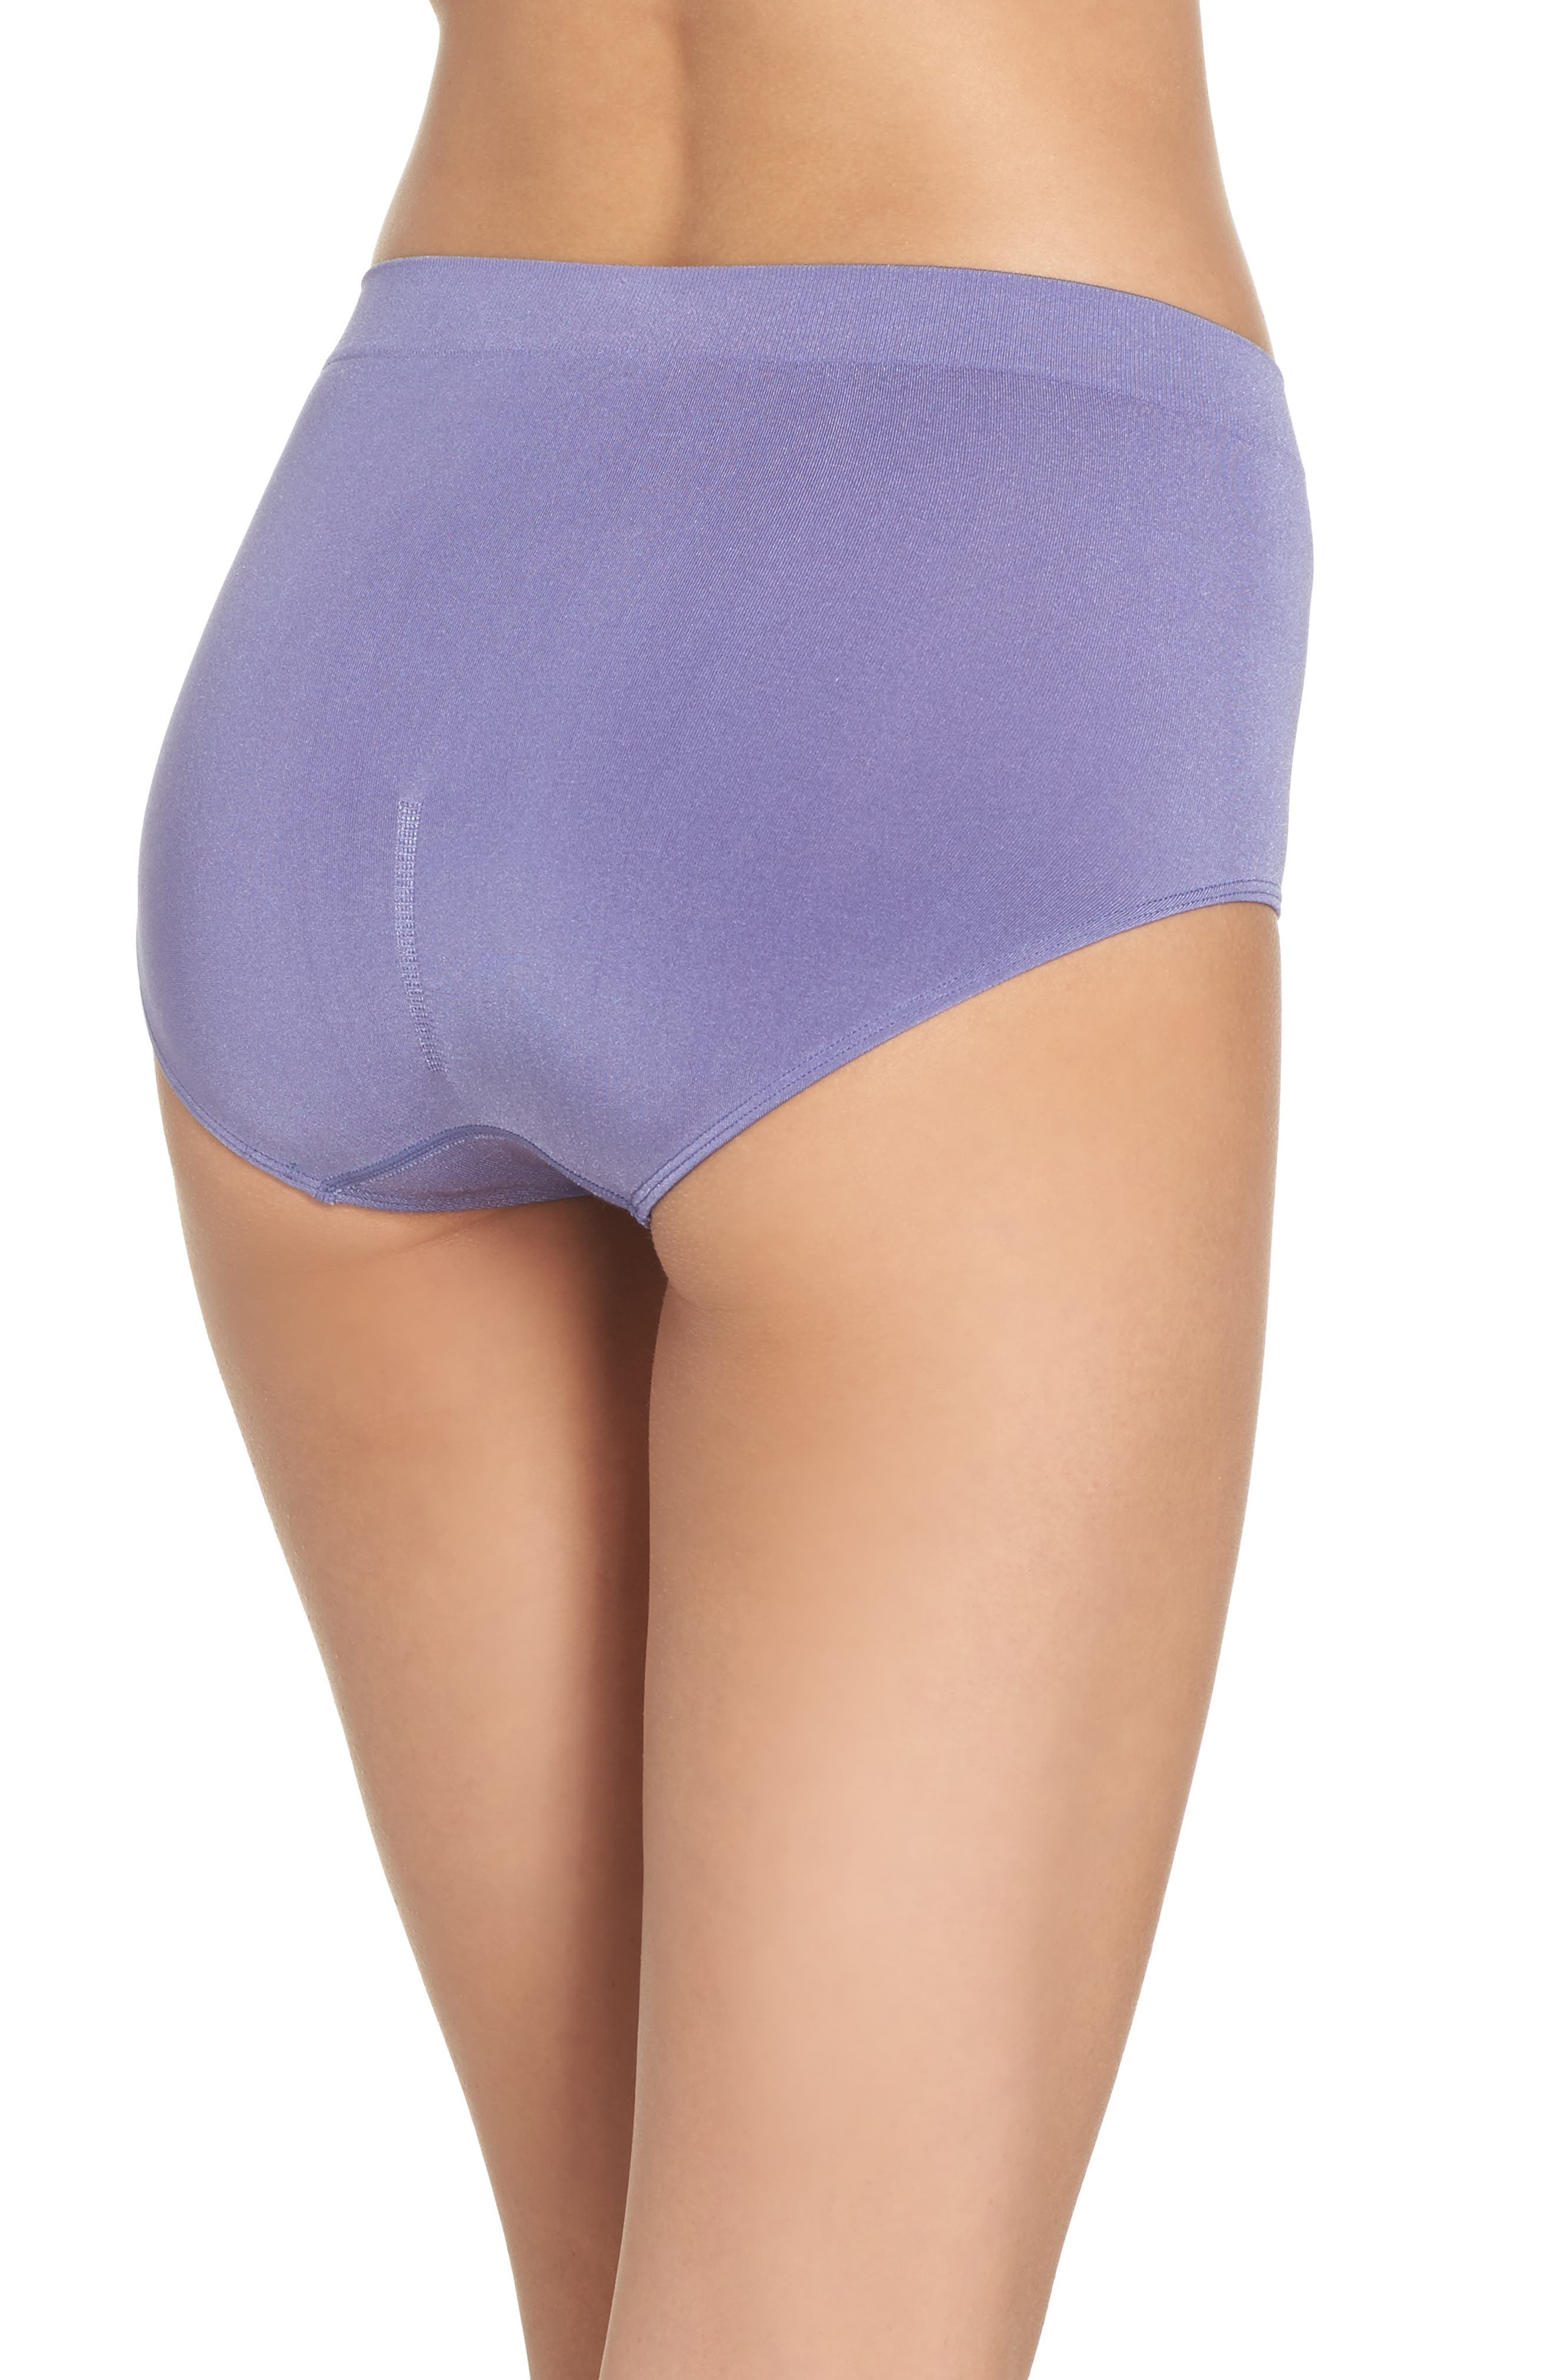 B Smooth Briefs,                             Alternate thumbnail 88, color,